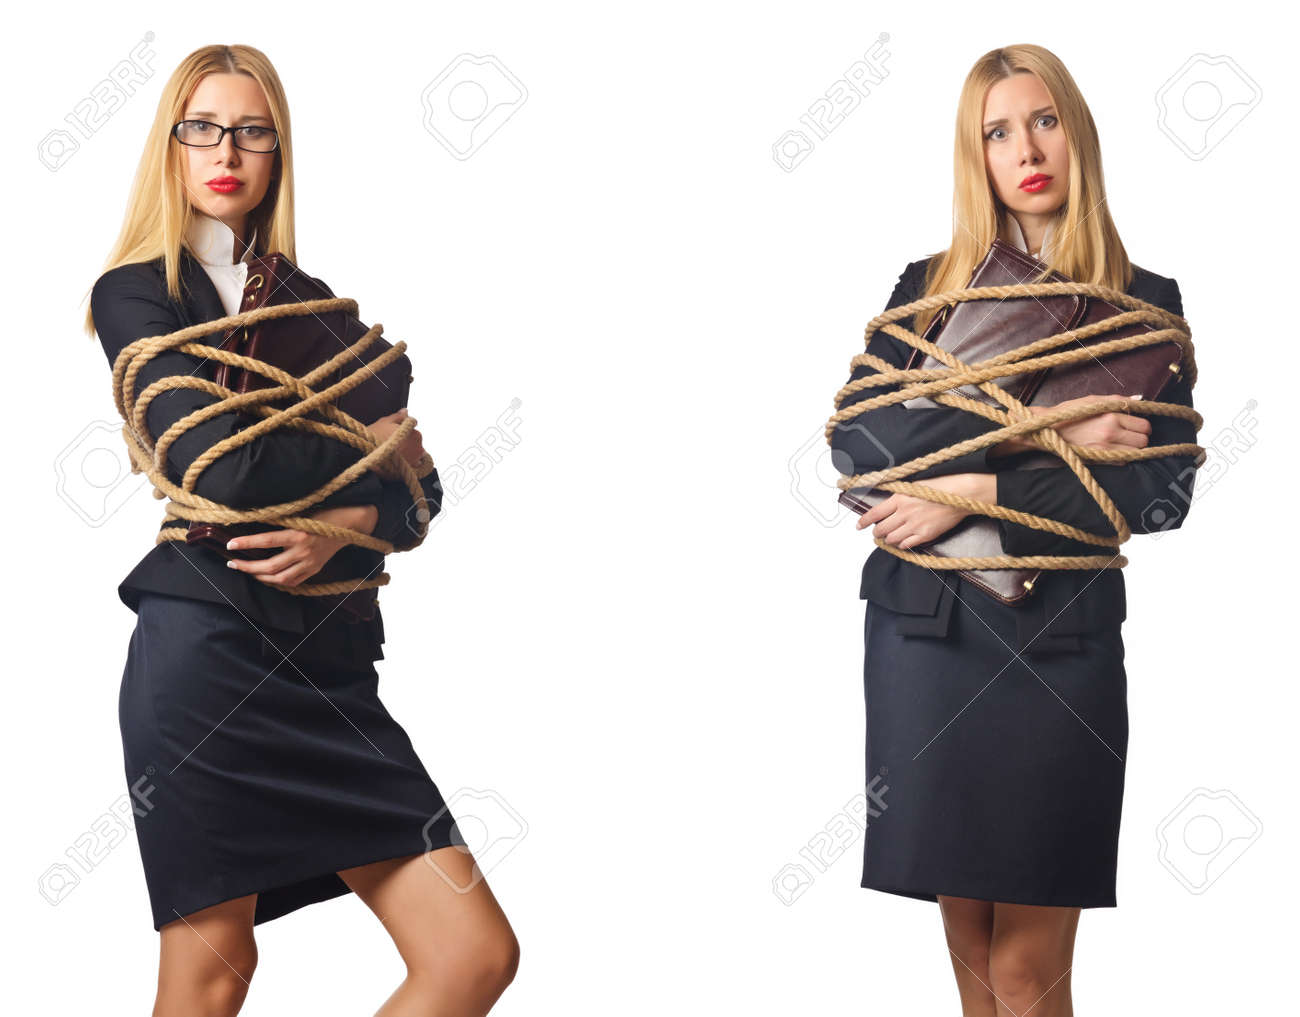 Woman tied up isolated on the white background - 55112630